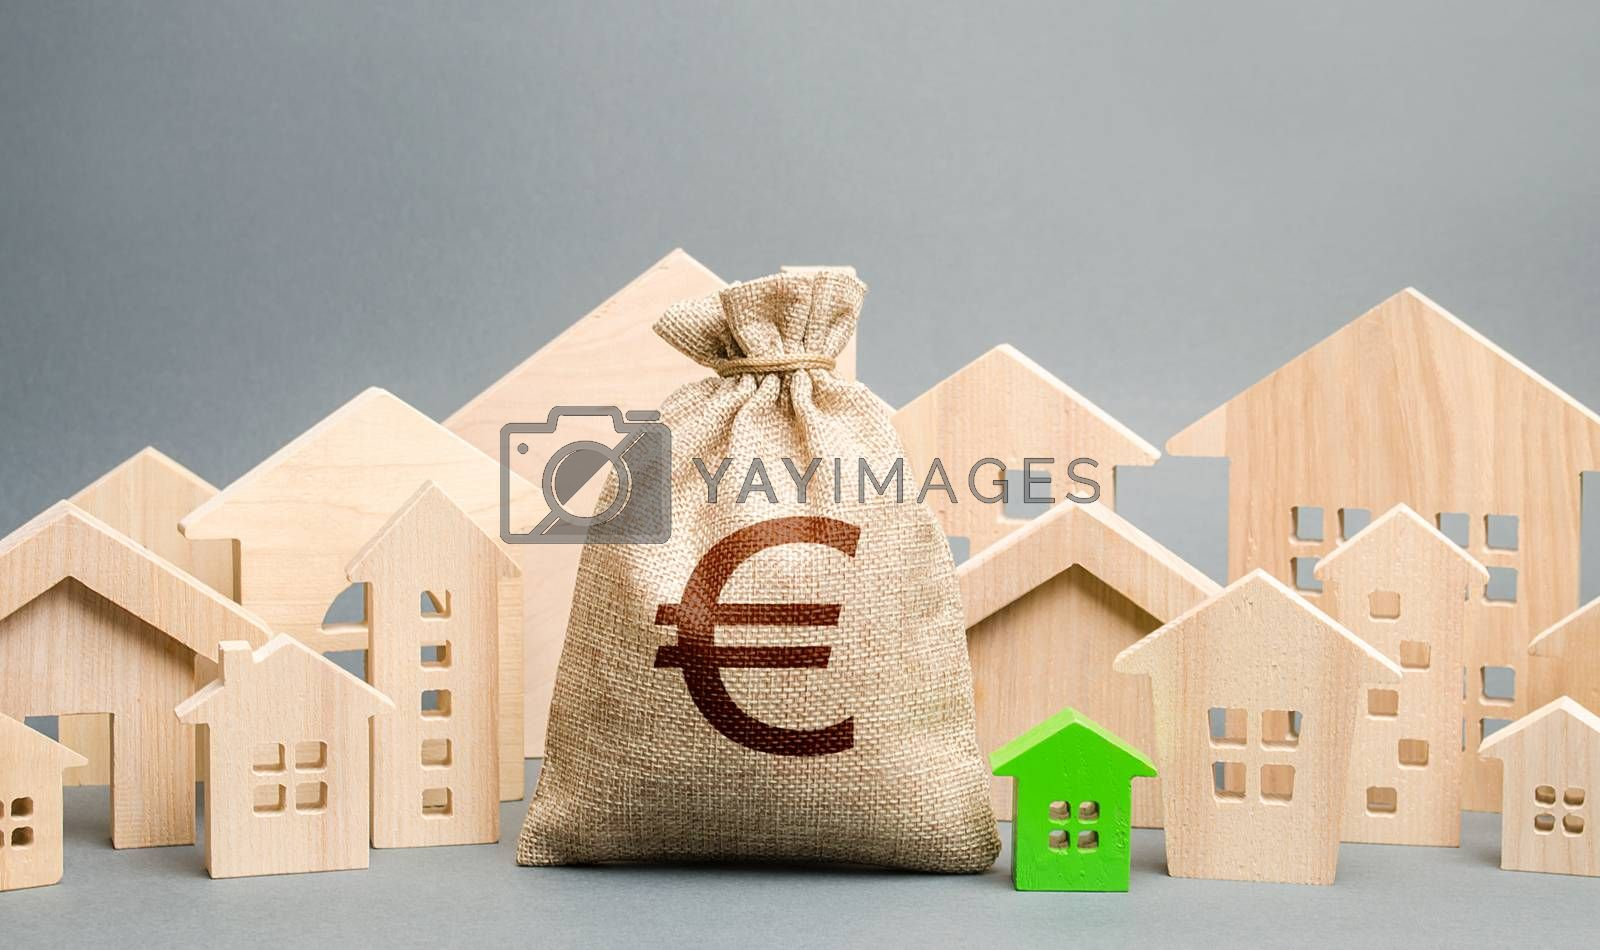 Euro money bag and a city of house figures. Buying real estate, fair price. City municipal budget. Property tax. Development and renovation of buildings. Investments. Cost of living in town.